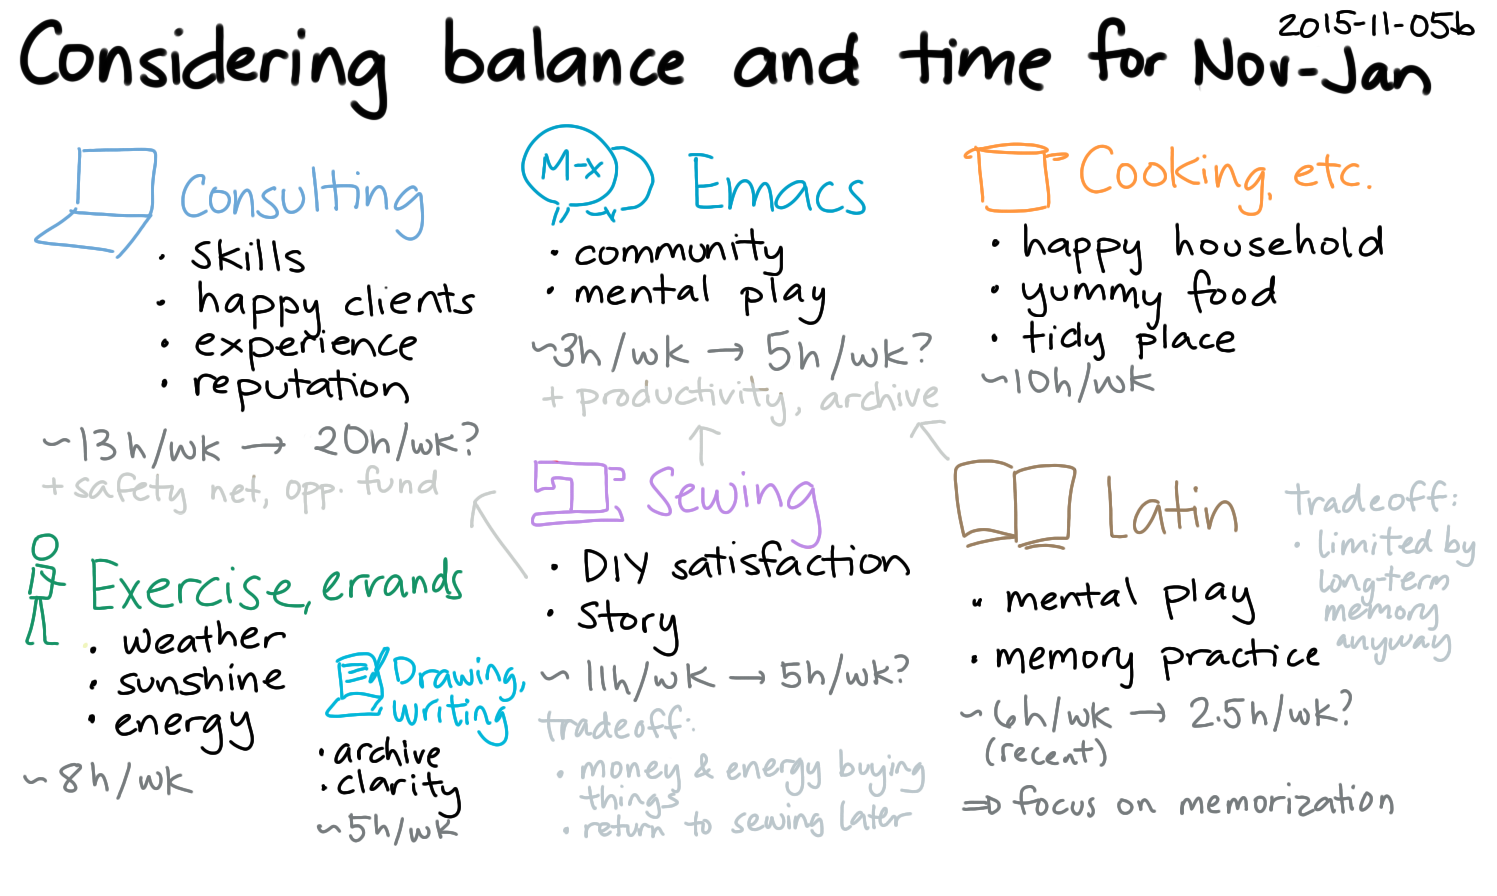 2015-11-05b Considering balance and time for Nov-Jan -- index card #experiment #interests #time #balance.png